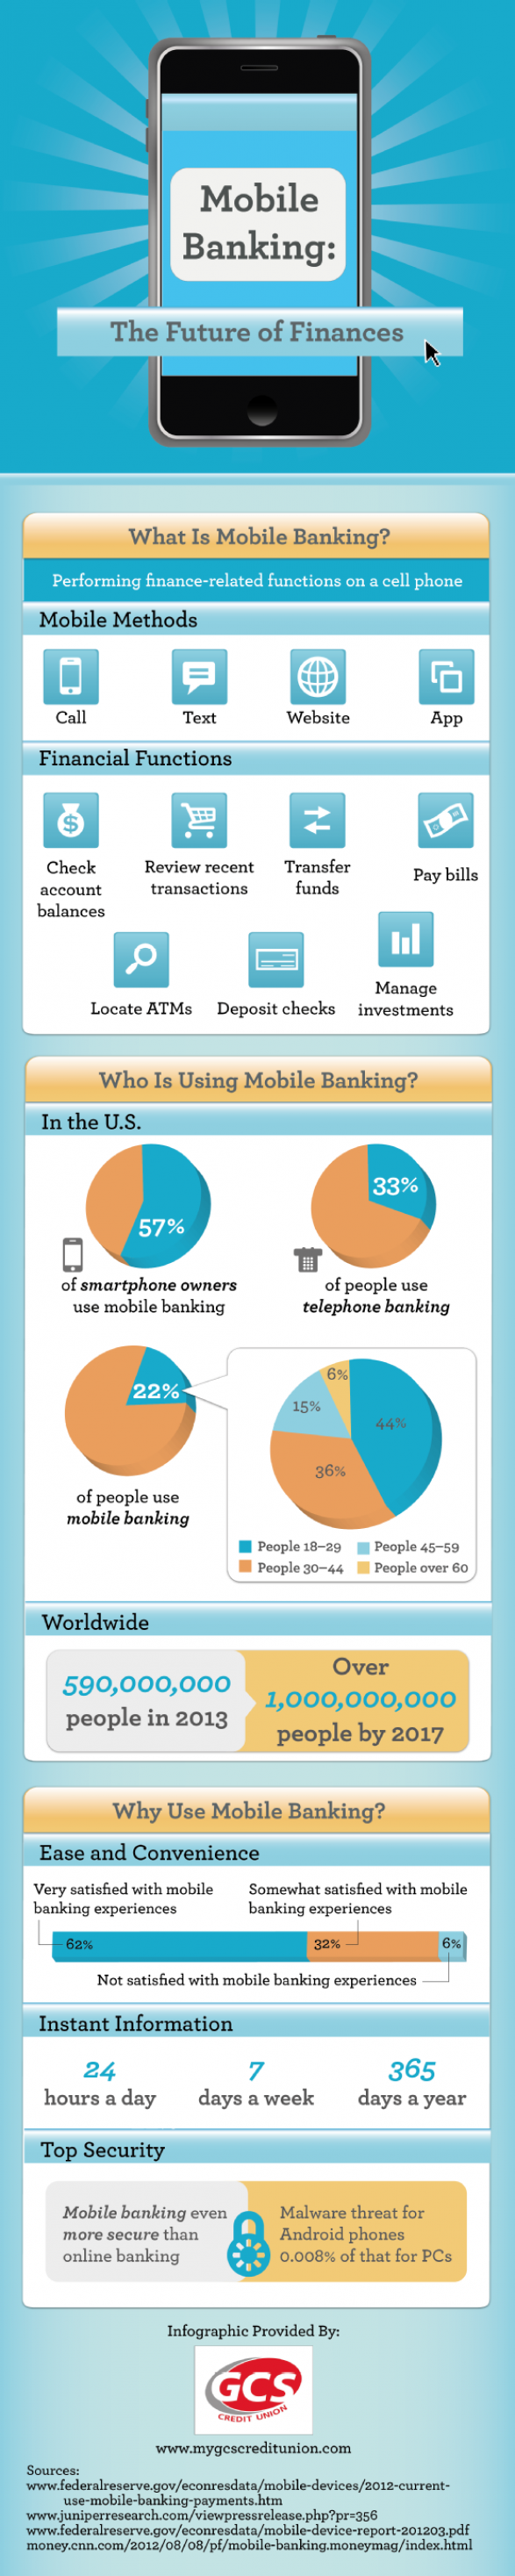 Mobile Banking: The Future of Finances